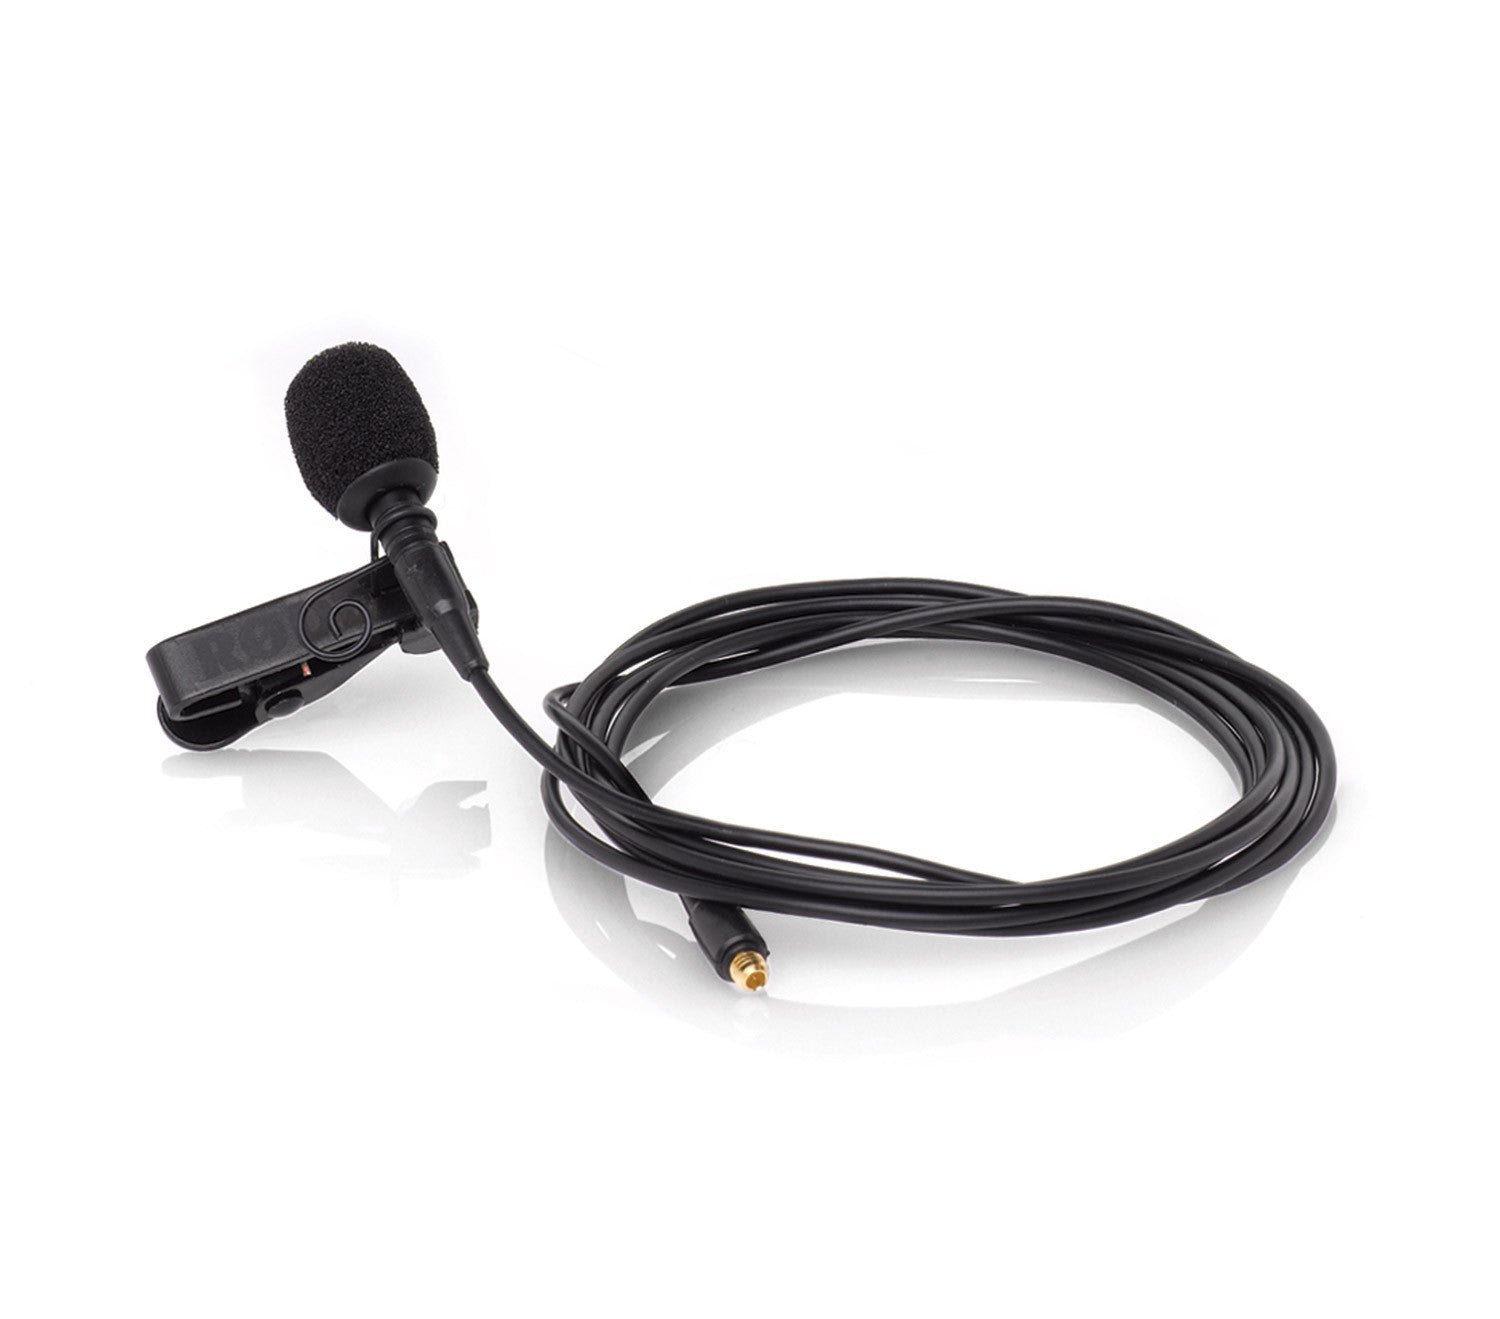 RODE Lavalier Microphone - Audio - RØDE - Helix Camera